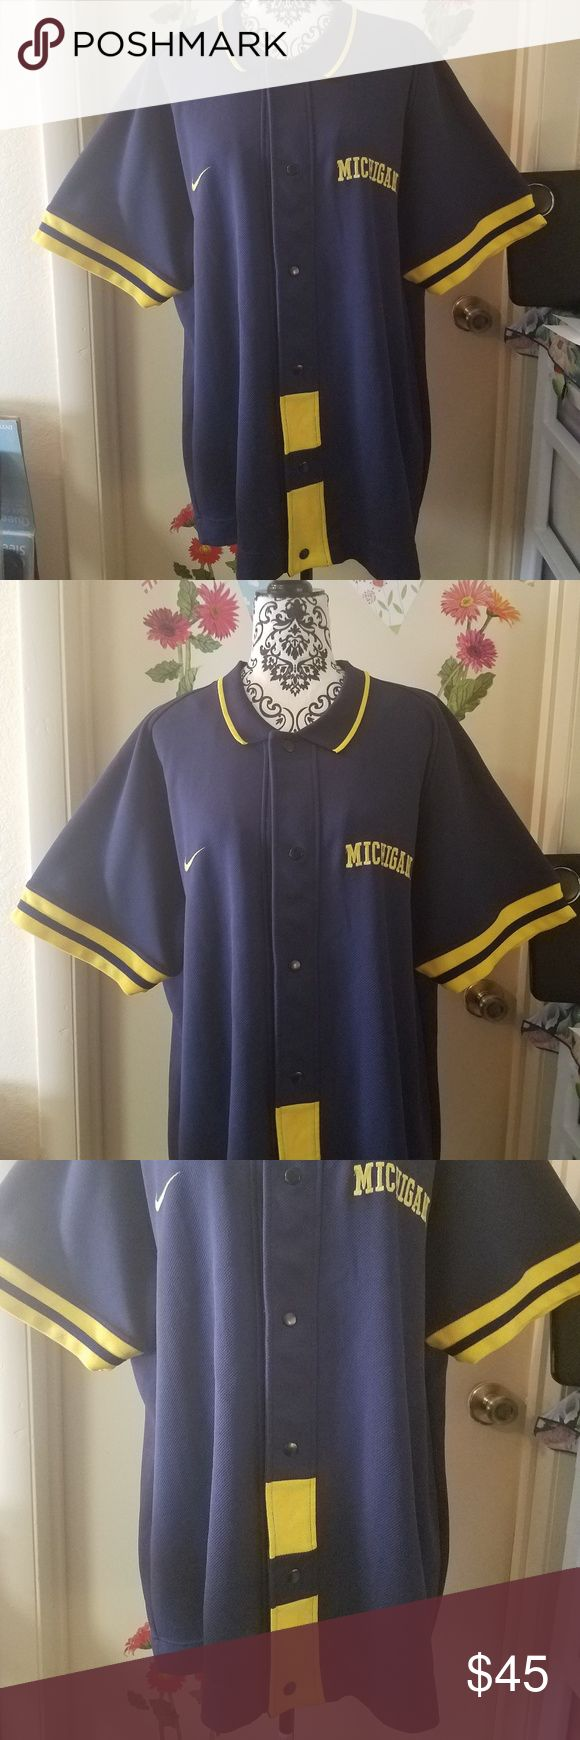 """TEAM NIKE SPORTS Snap On Michigan Jersey Shirt XL TEAM NIKE SPORTS Snap On Michigan Jersey Shirt Men Blue Yellow Polyester XL Excellent Used Condition   Nice baseball snap on jersey baseball shirt   94% Polyester  6% Cotton   Measurements:  Length: 33"""" in Chest: 27"""" in  Thank you for looking!  GB-T01 Nike Shirts Casual Button Down Shirts"""